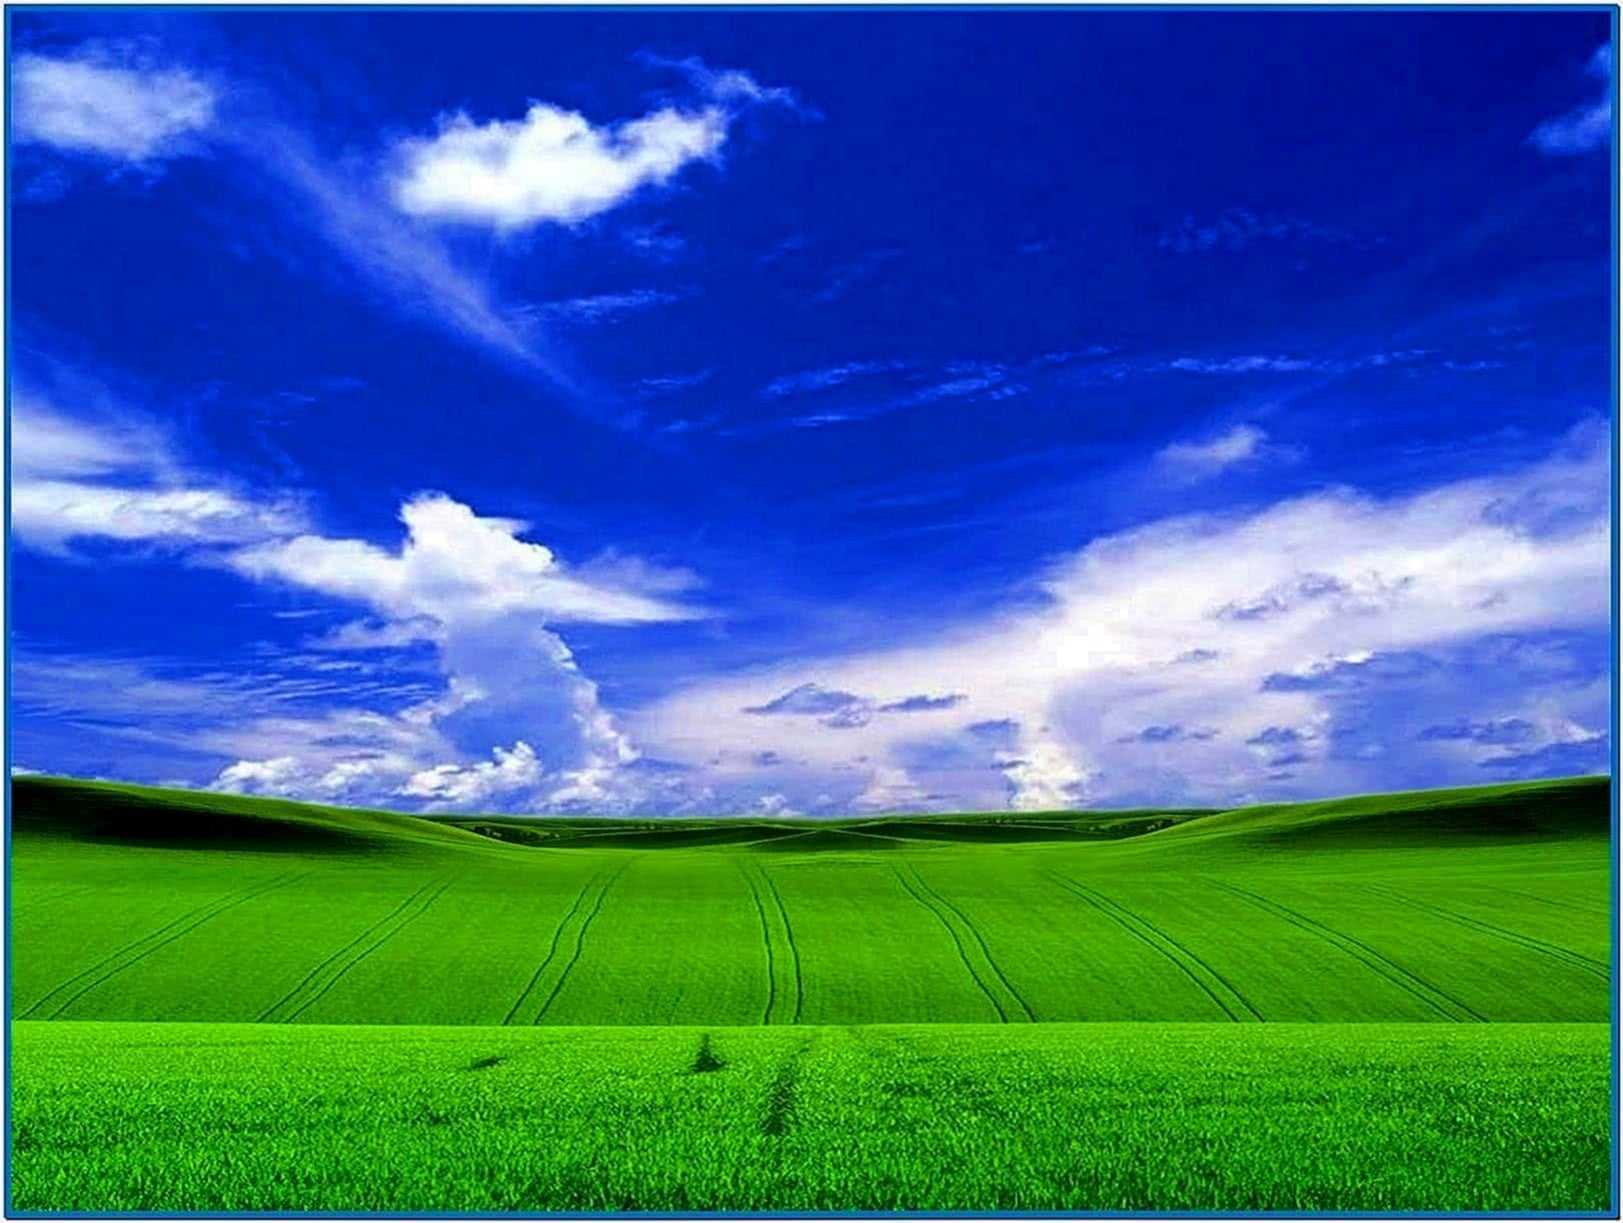 screensaver xp free download - photo #3